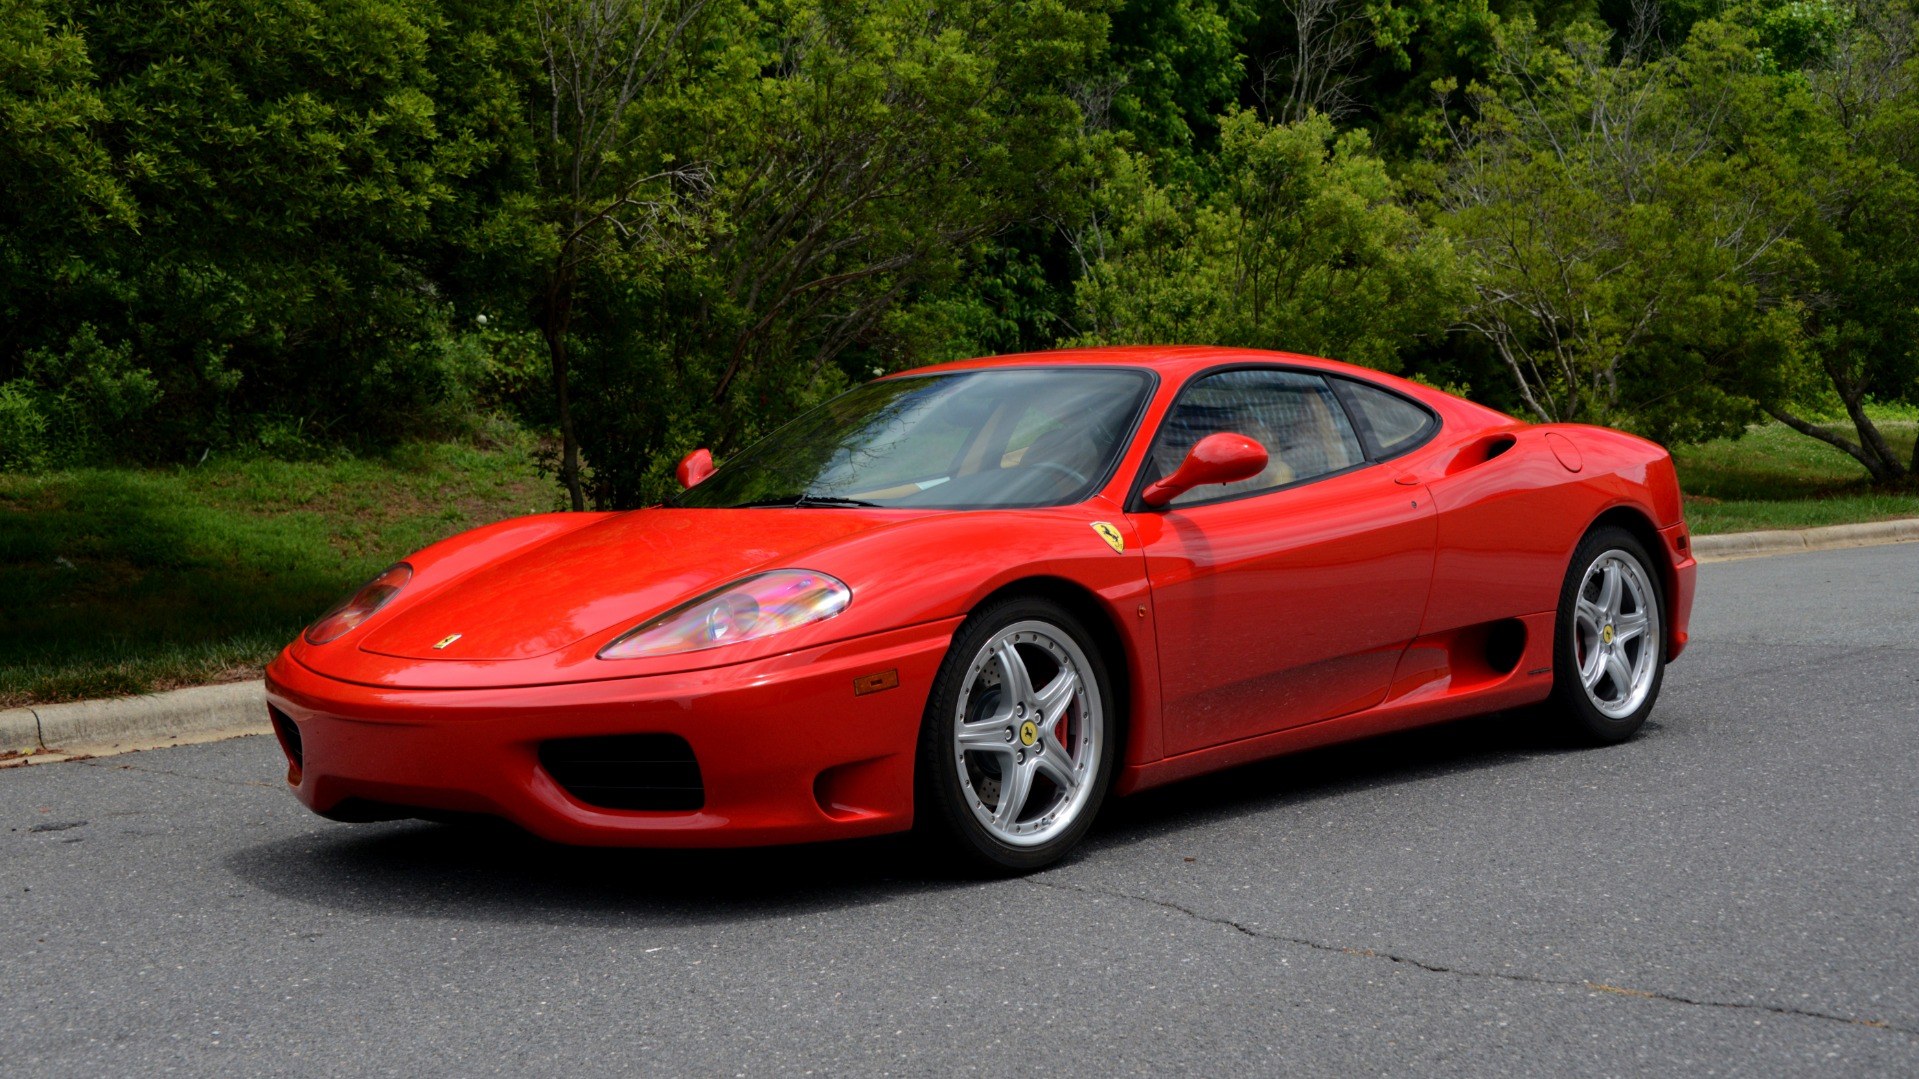 Used 2004 Ferrari 360 MODENA COUPE / GATED 6-SPD MANUAL / SUNROOF / LOW MILES for sale Sold at Formula Imports in Charlotte NC 28227 1